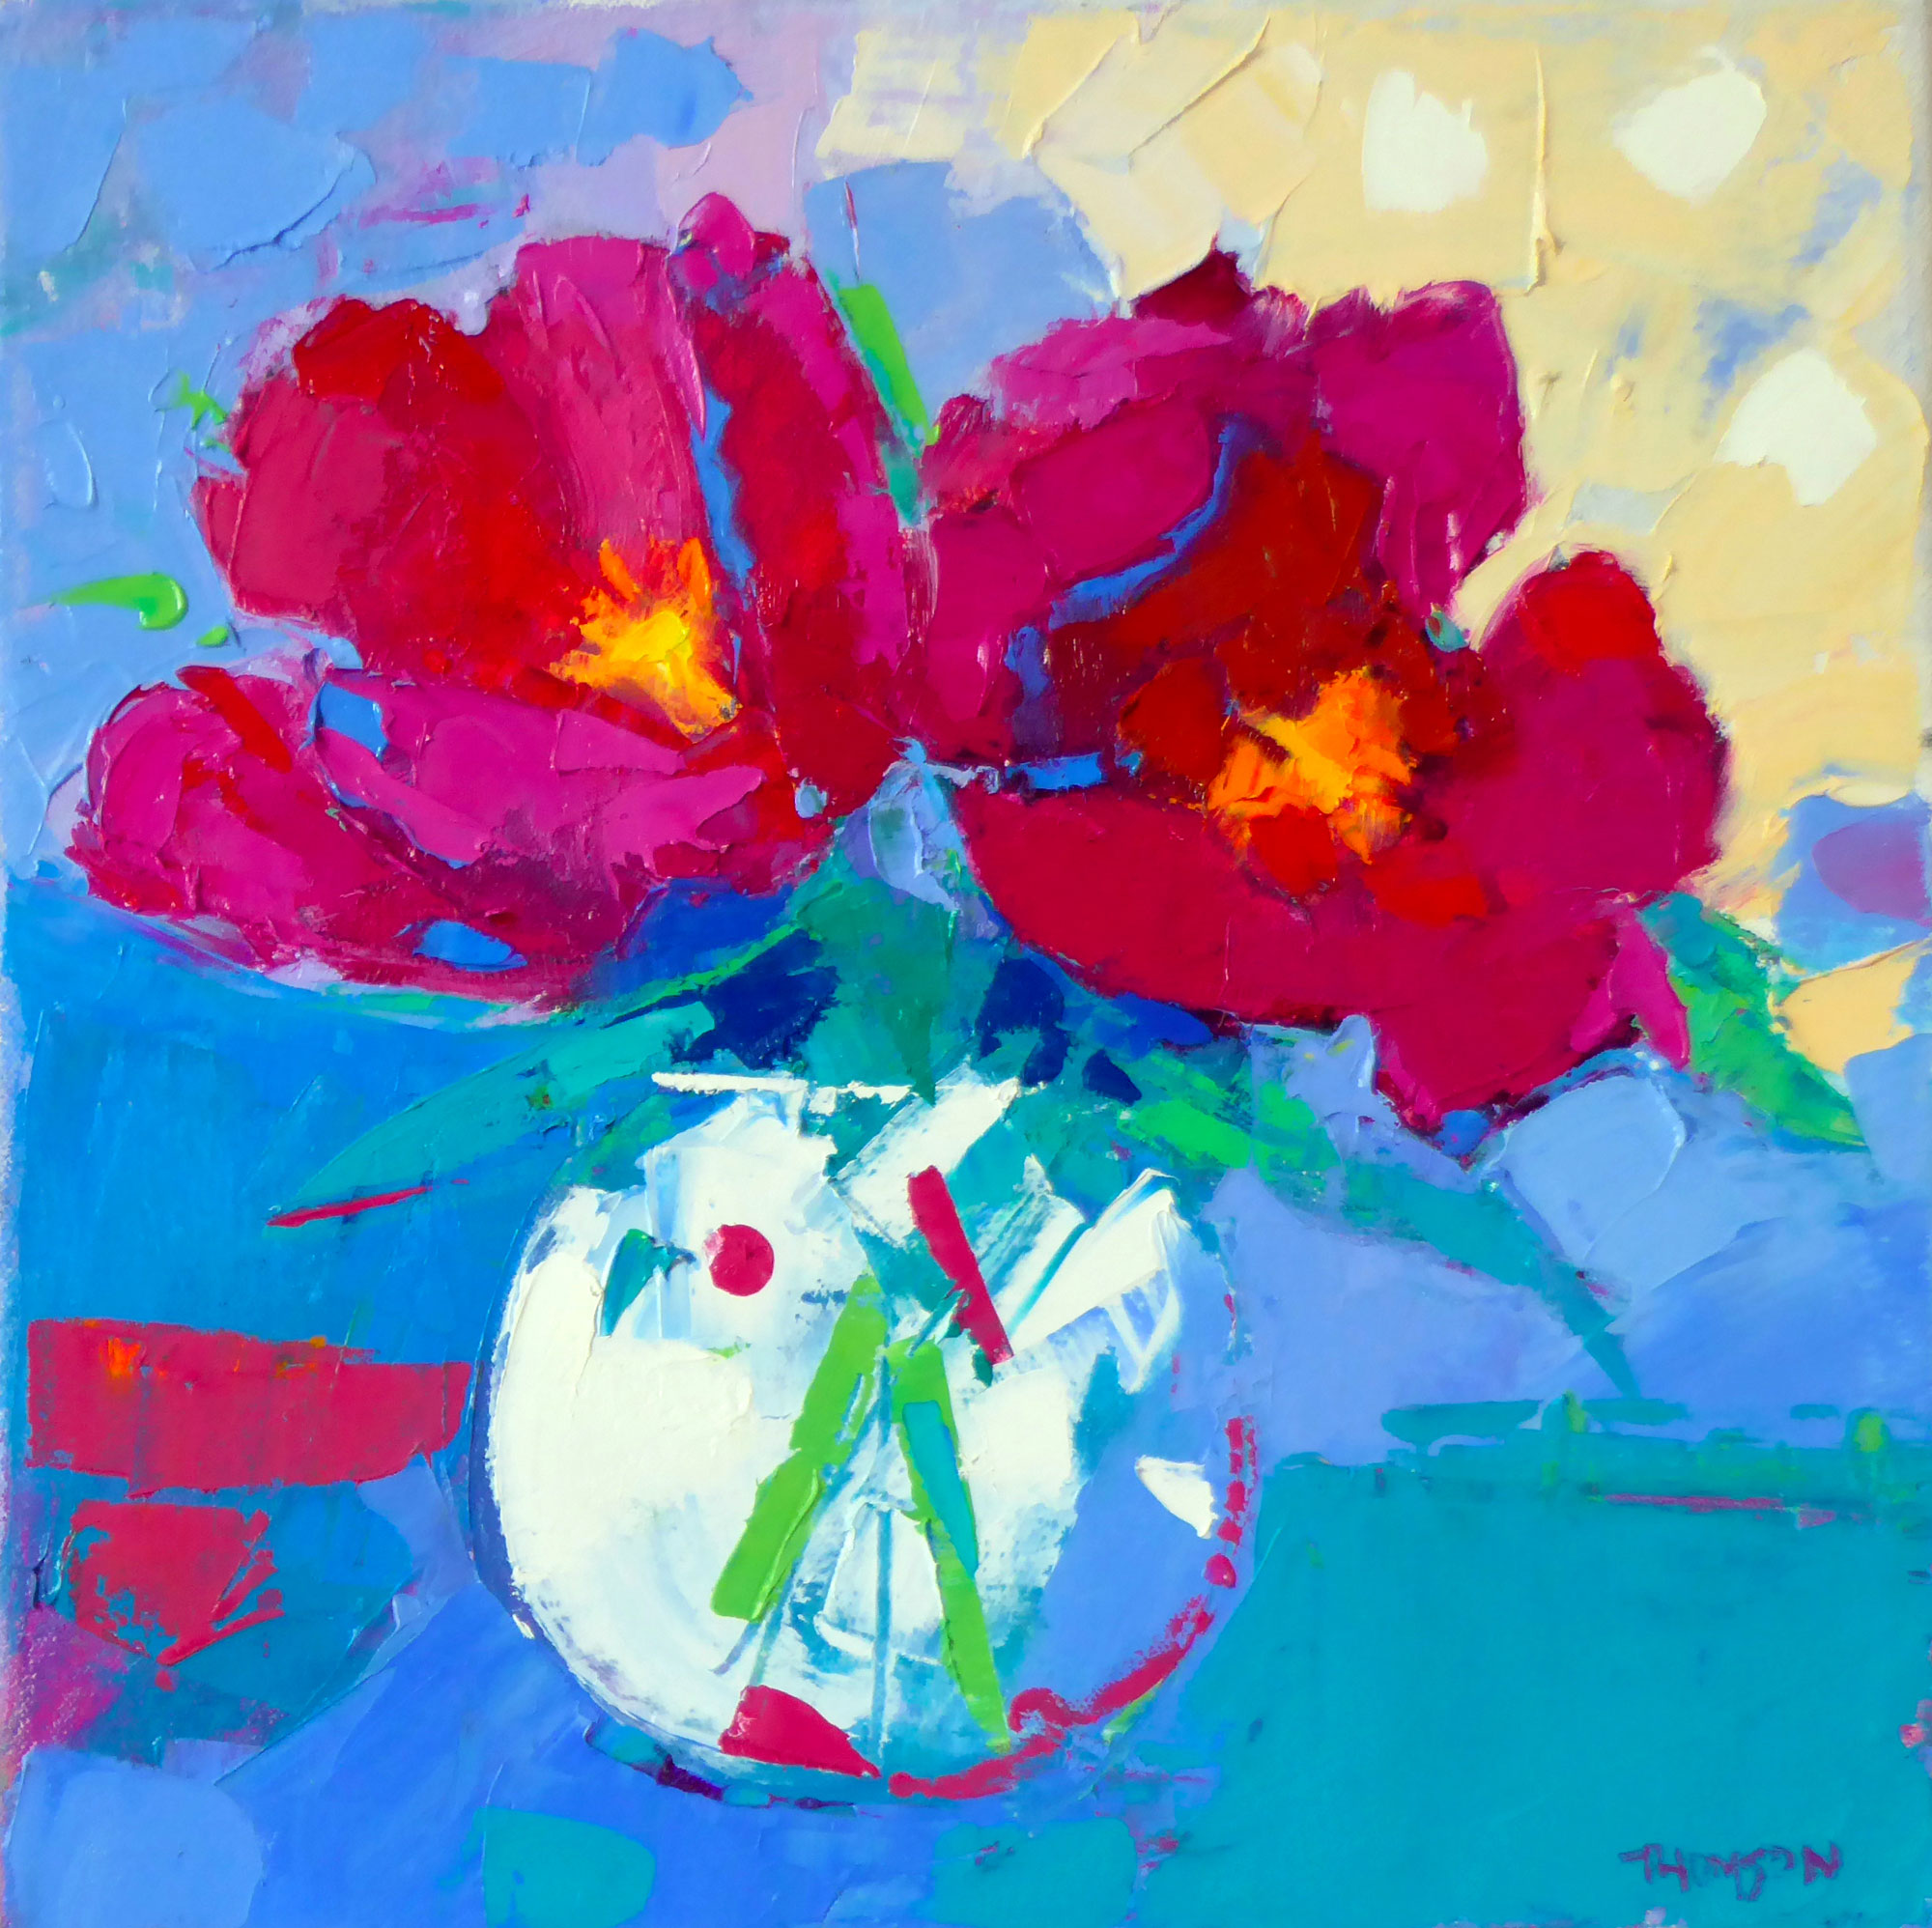 Two Peonies Ina Ginger Jar